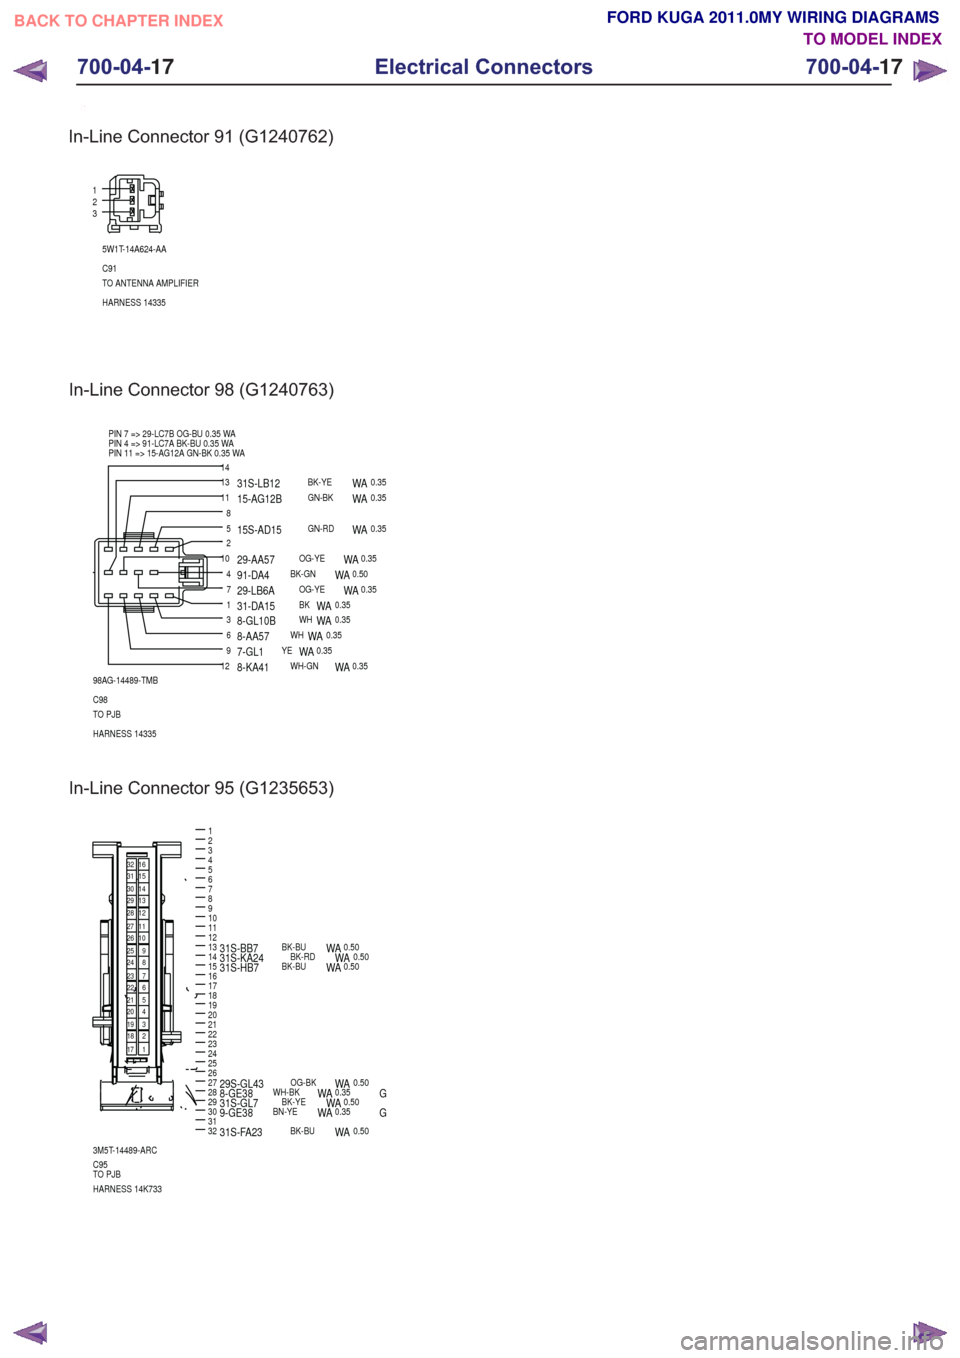 1996 Chrysler Cirrus Engine Wiring Diagram Html